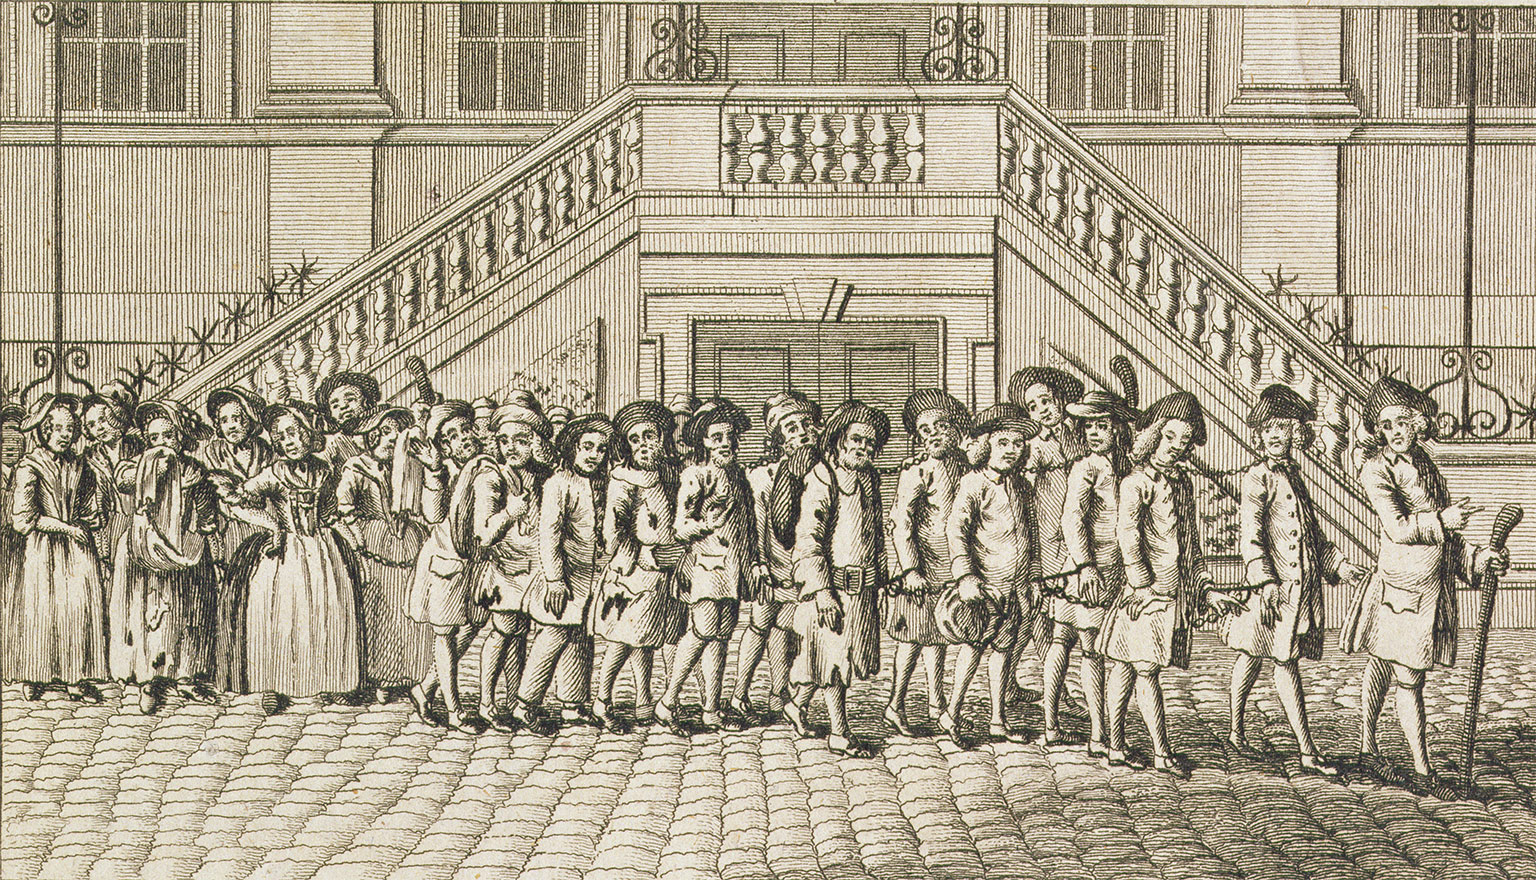 Convicts from Newgate Prison being taken for transportation, c.1760